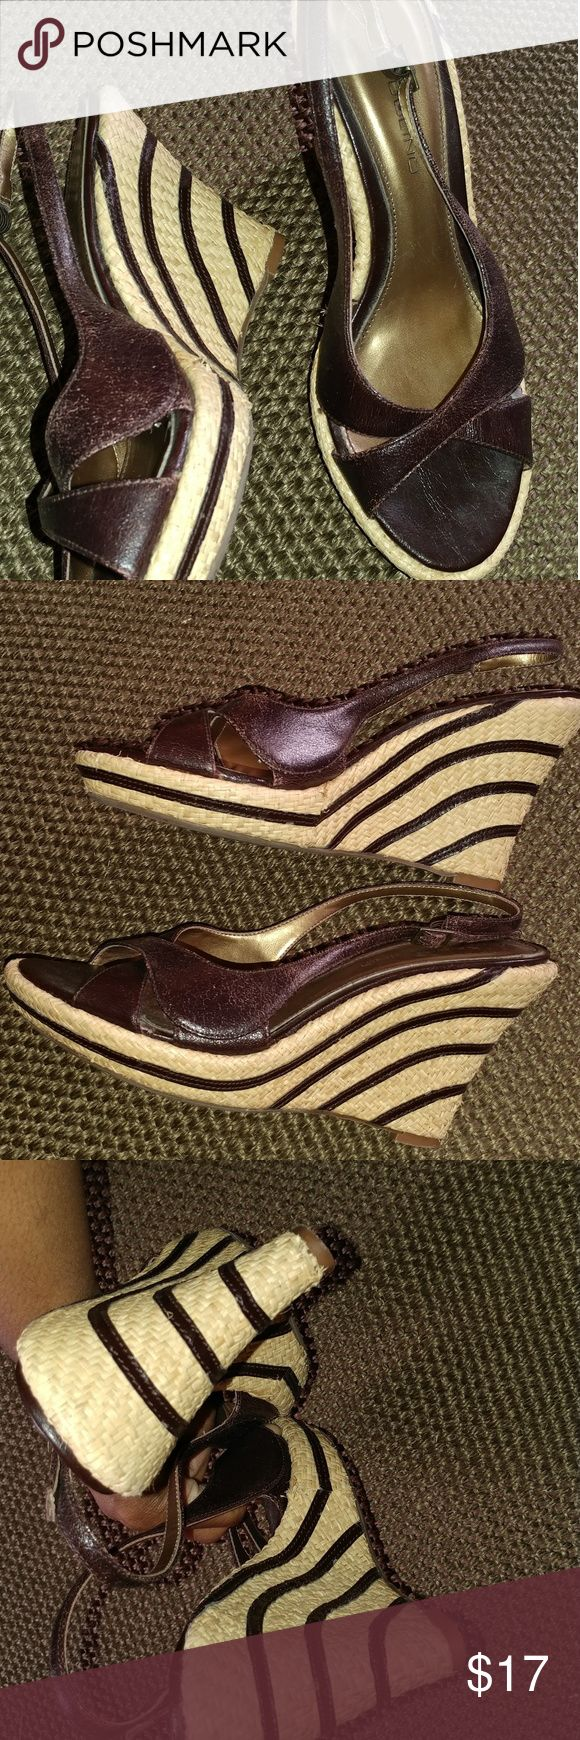 Bandolino Brown Striped Wedges Size 9.5 Sexy brown wedges. Size 9.5. Size tag removed but they are 9.5. Used but in Great condition. Steve Madden Shoes Wedges